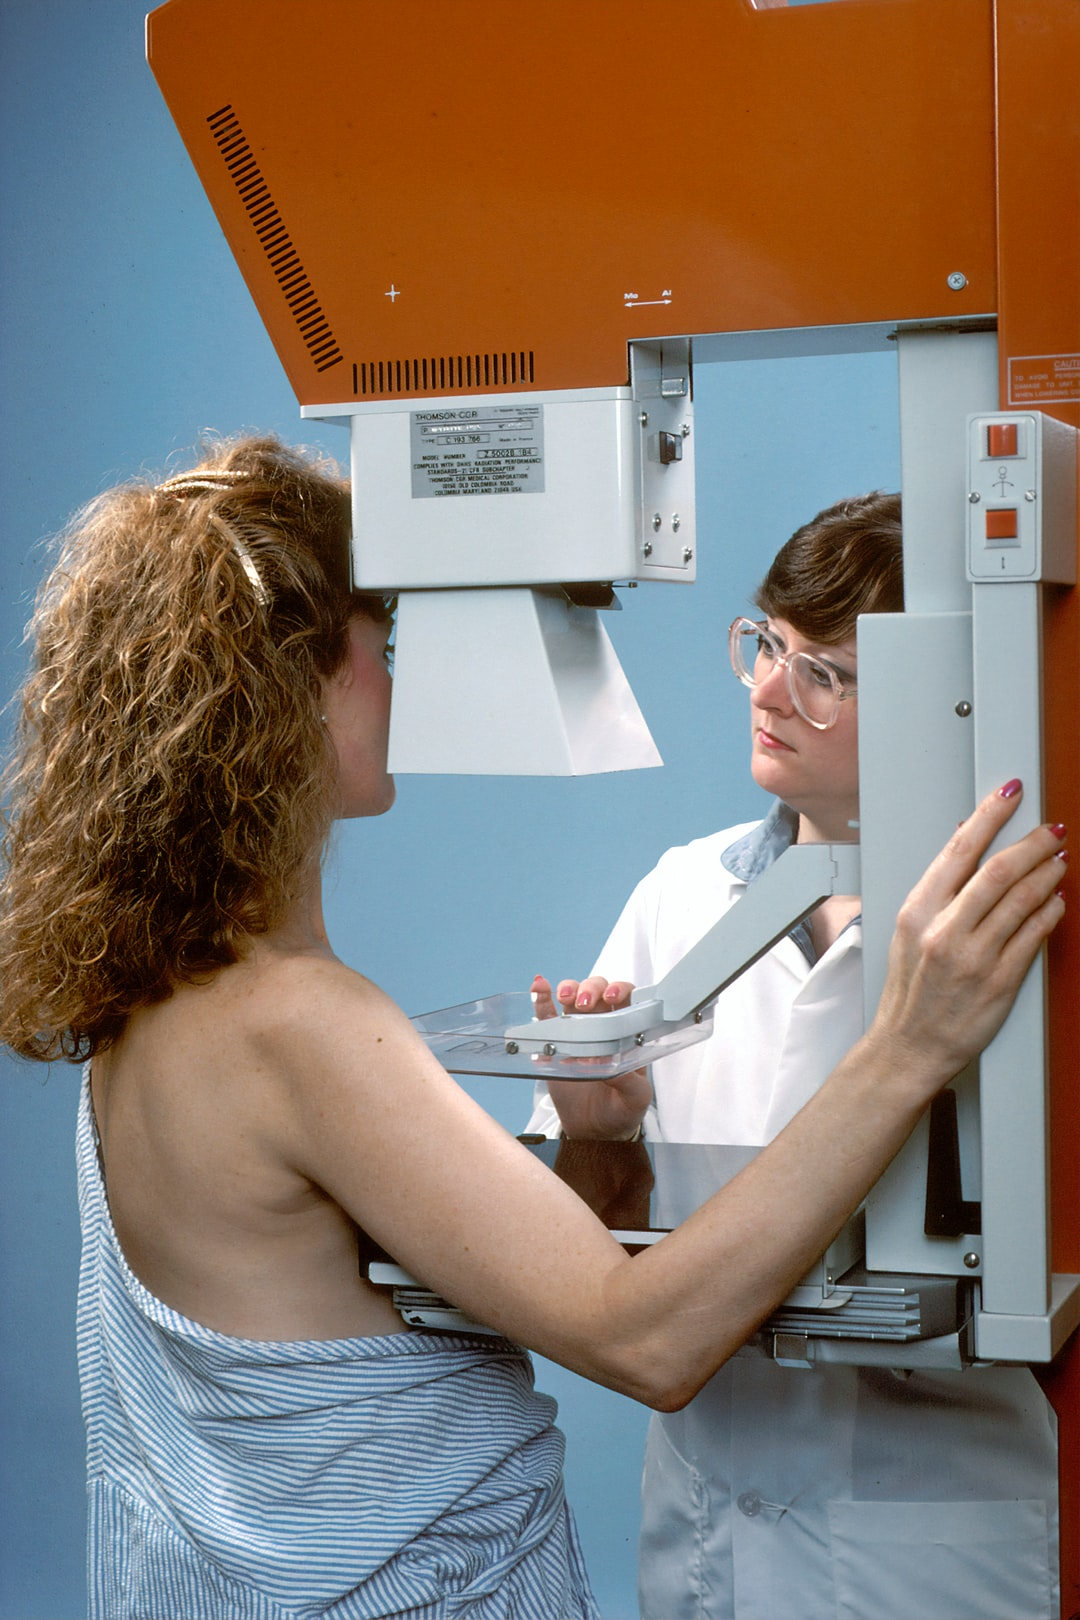 A female Caucasian radiology technician preparing a 42 year old Caucasian woman for a mammogram. The technician is positioning the paddle used to compress the breast. The patient's face is turned towards the technician, away from the camera. Her right shoulder is raised obscuring the breast.